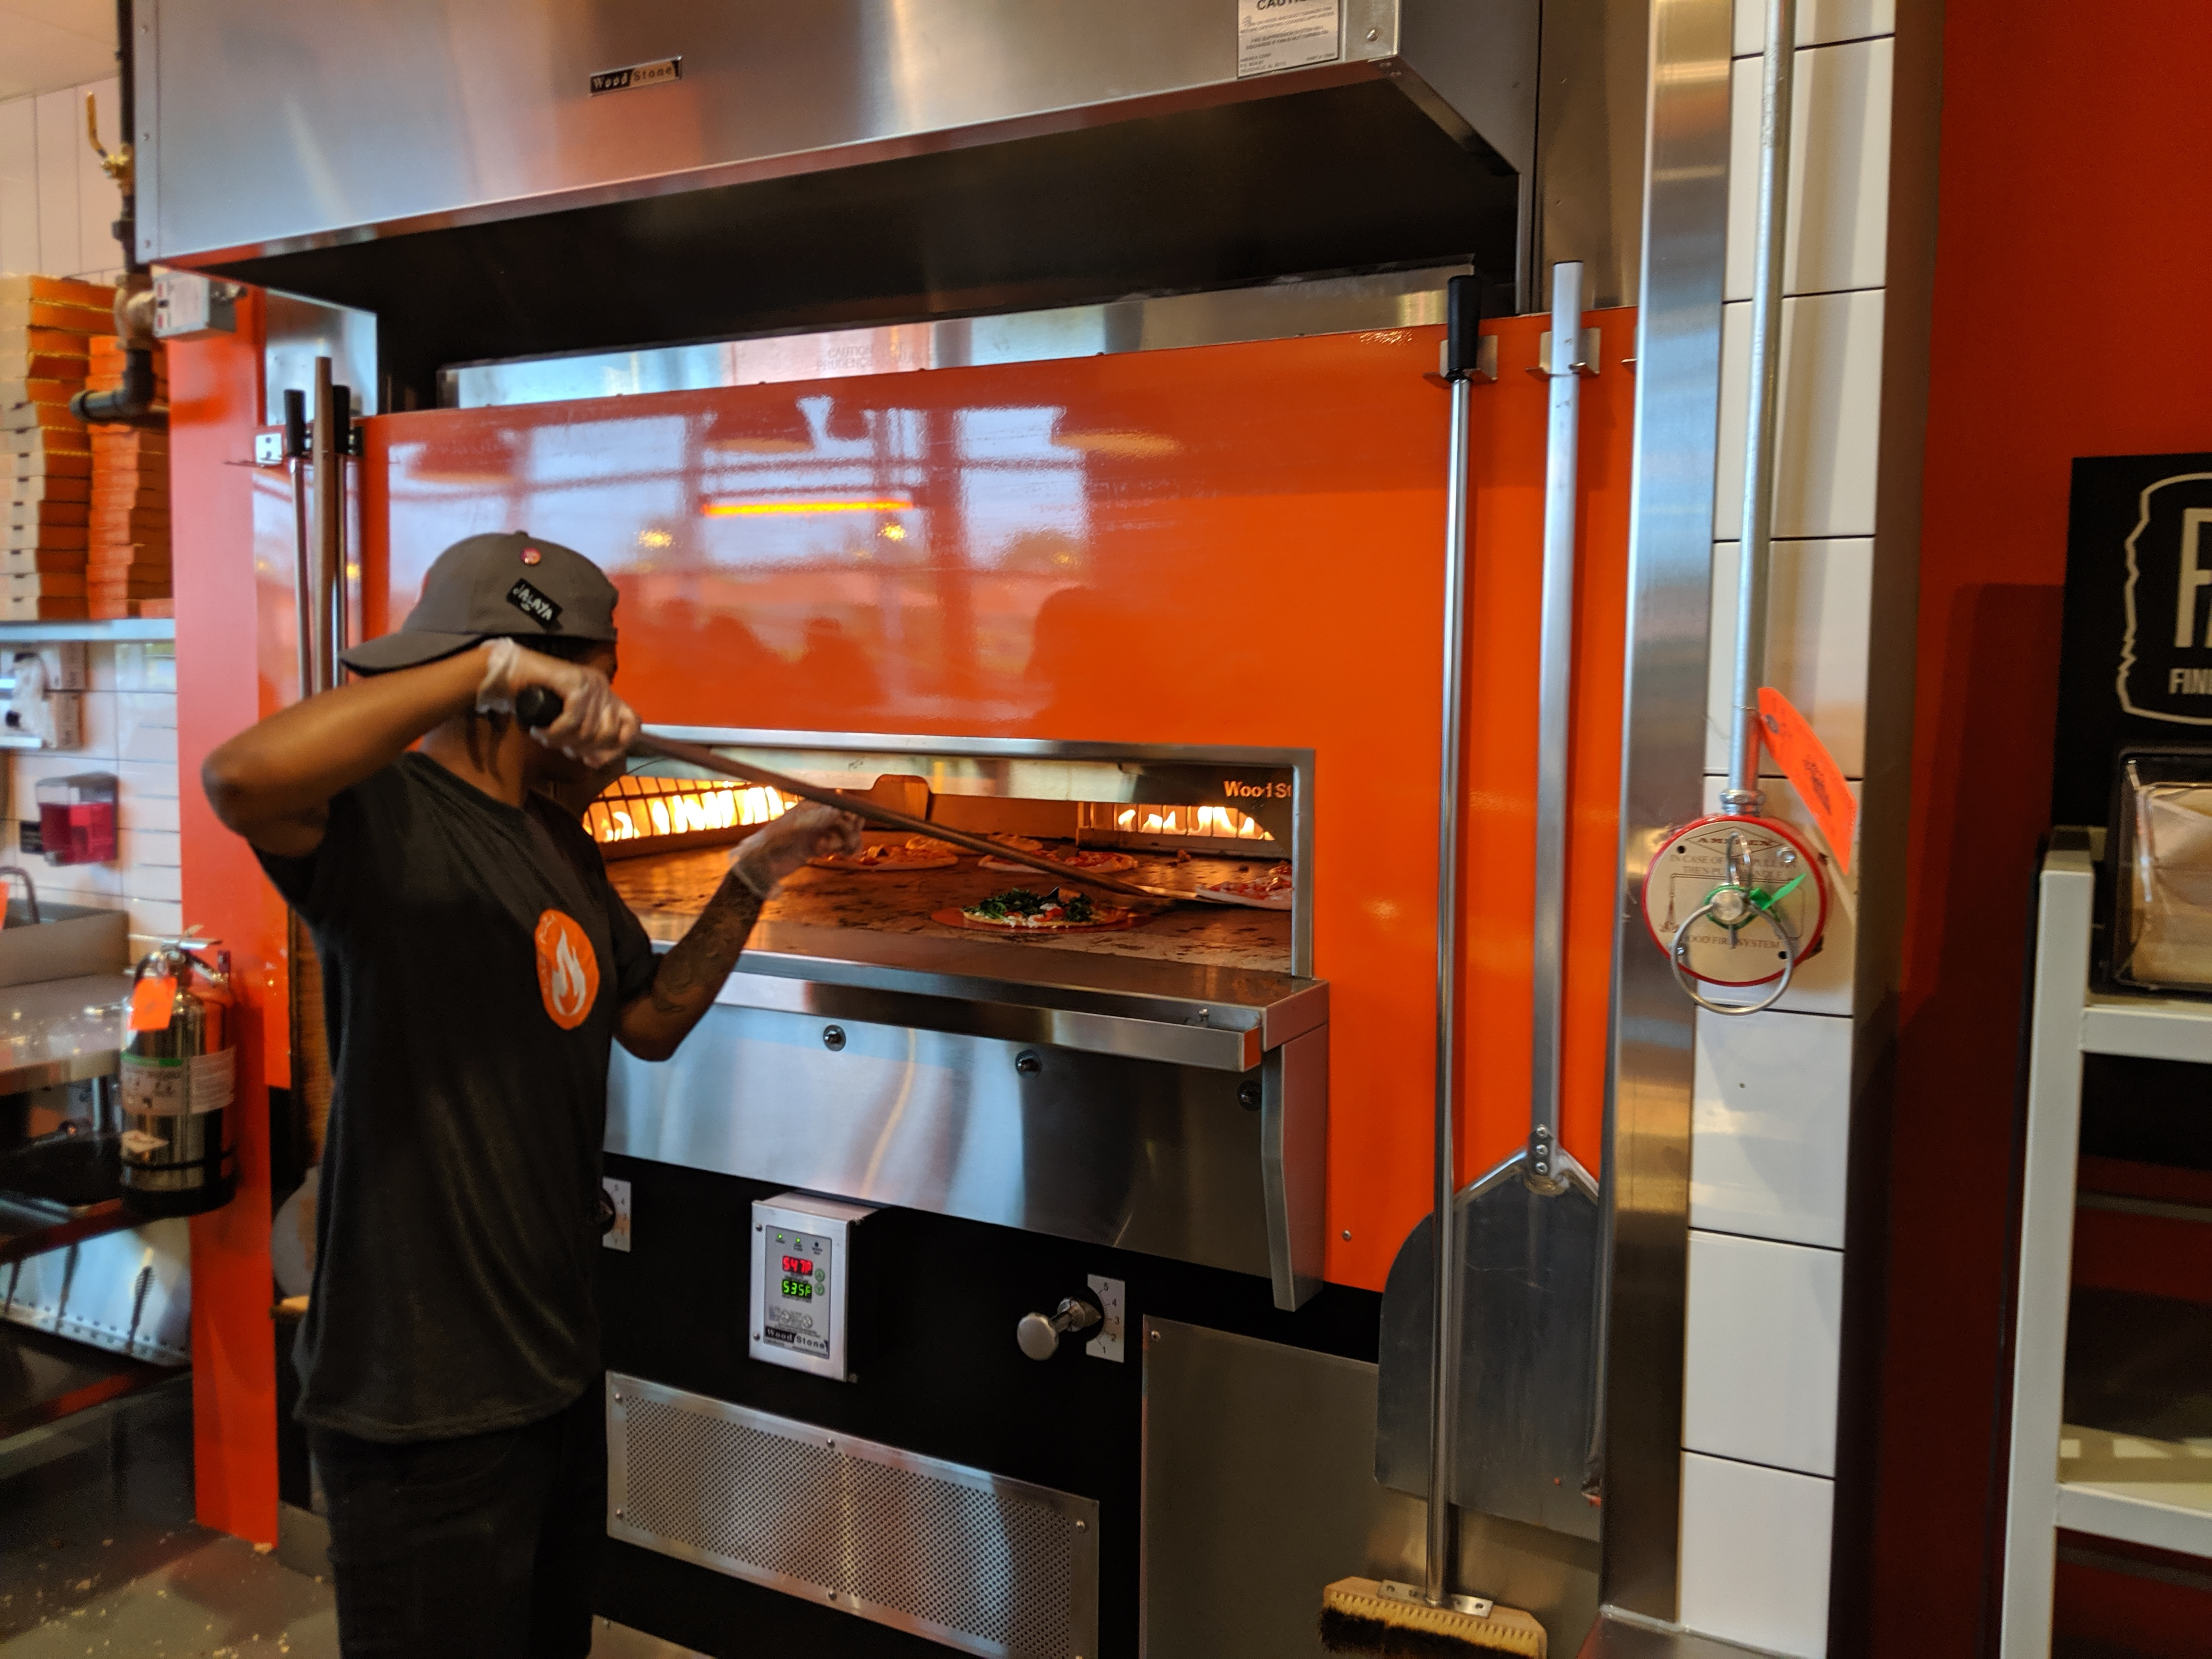 Blaze Pizza keeps growing; adds new Upstate New York location